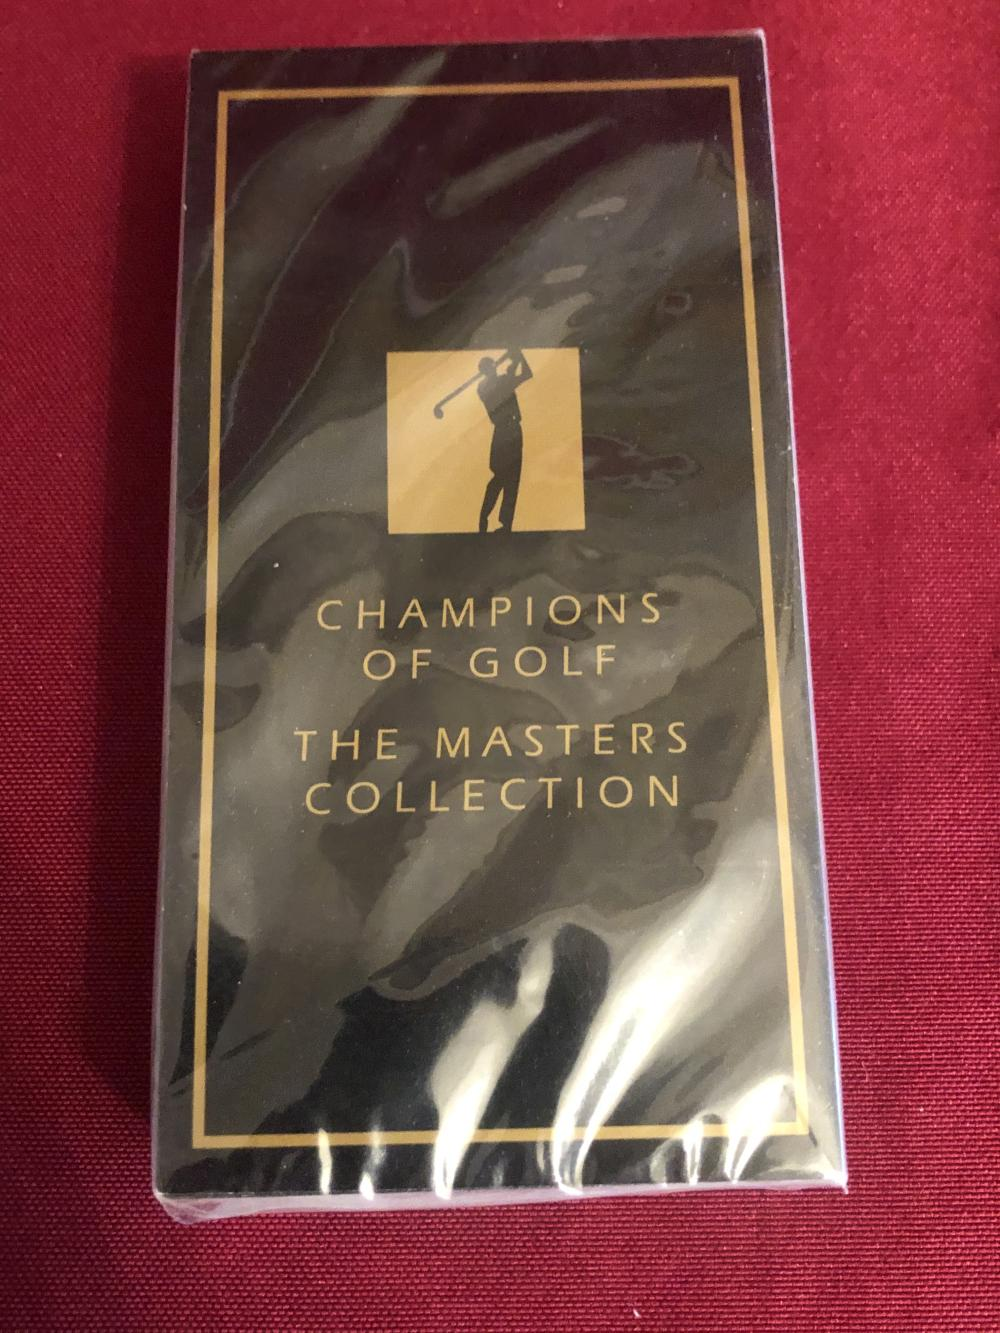 Set of 1997 champions of golf Masters collection